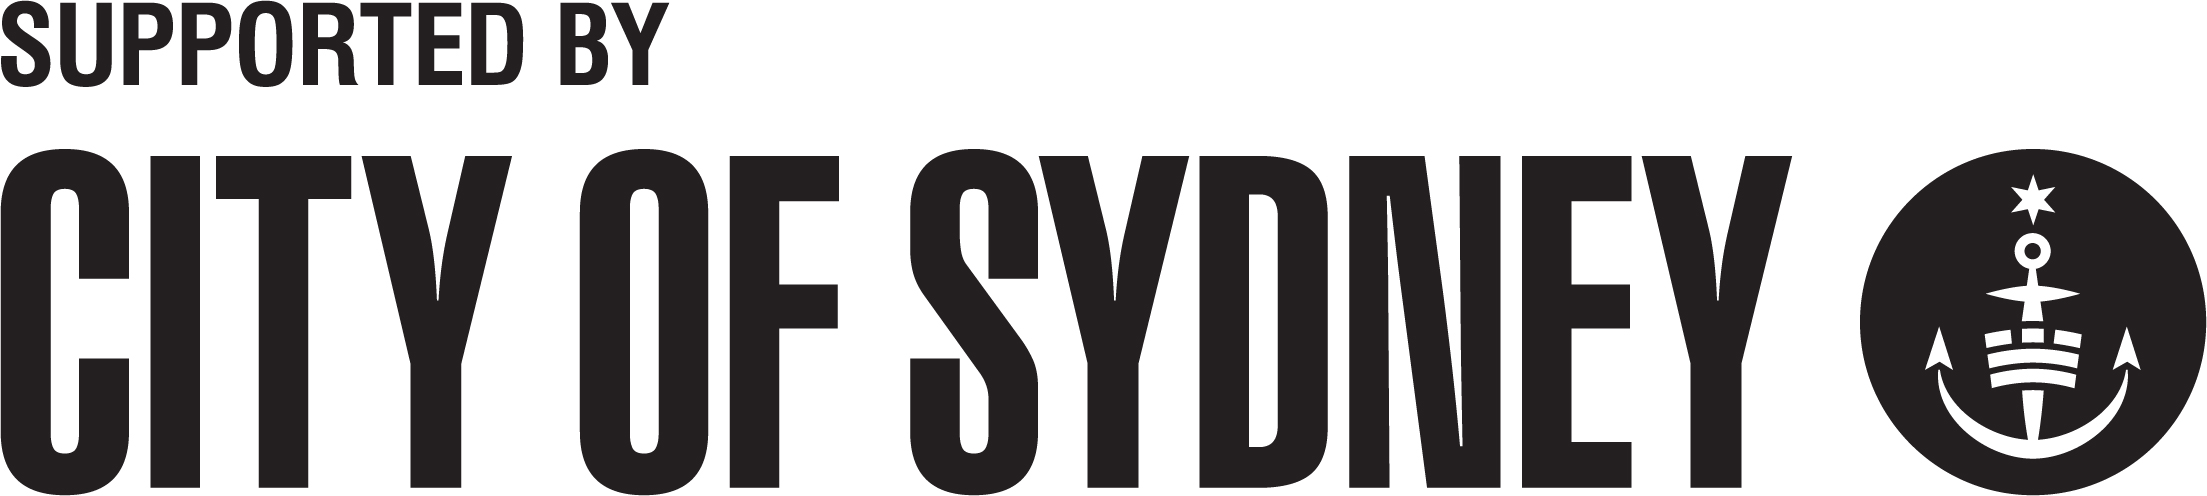 City of Sydney - supported by - horizontal